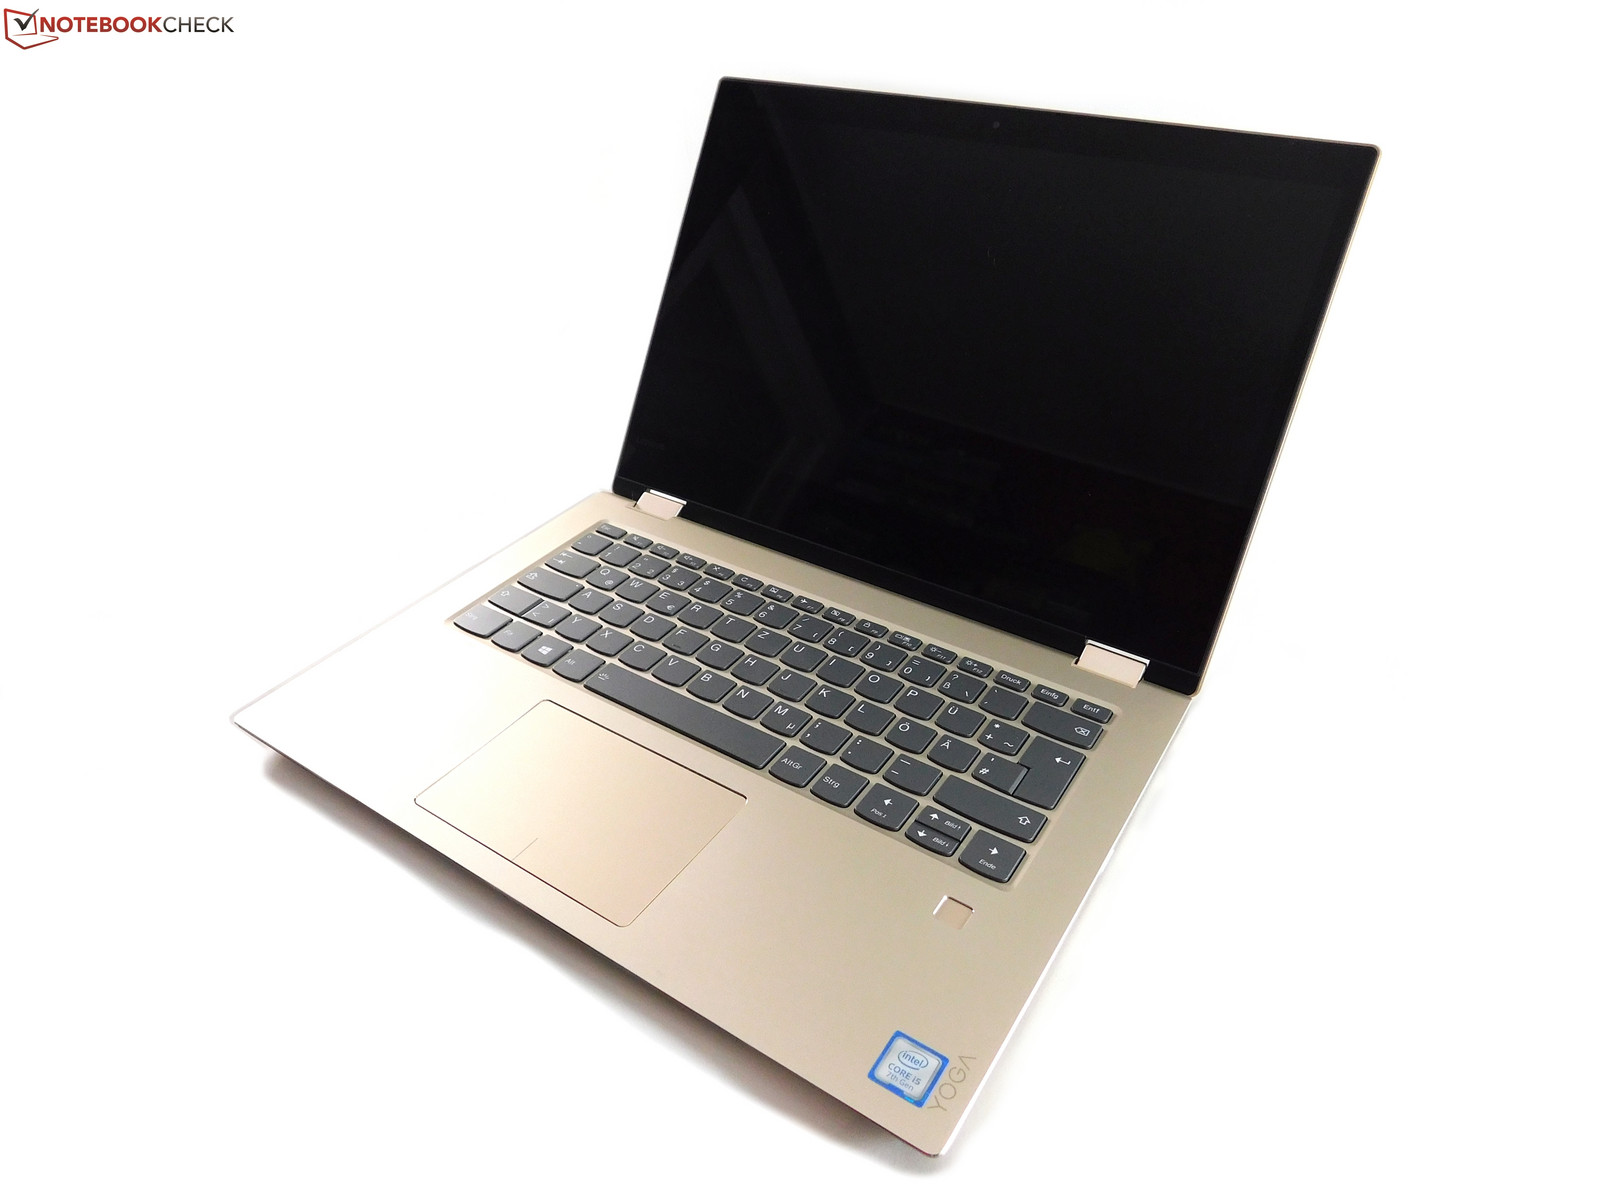 Lenovo Yoga 520 14ikb I5 7200u 256 Gb Ssd Laptop Review